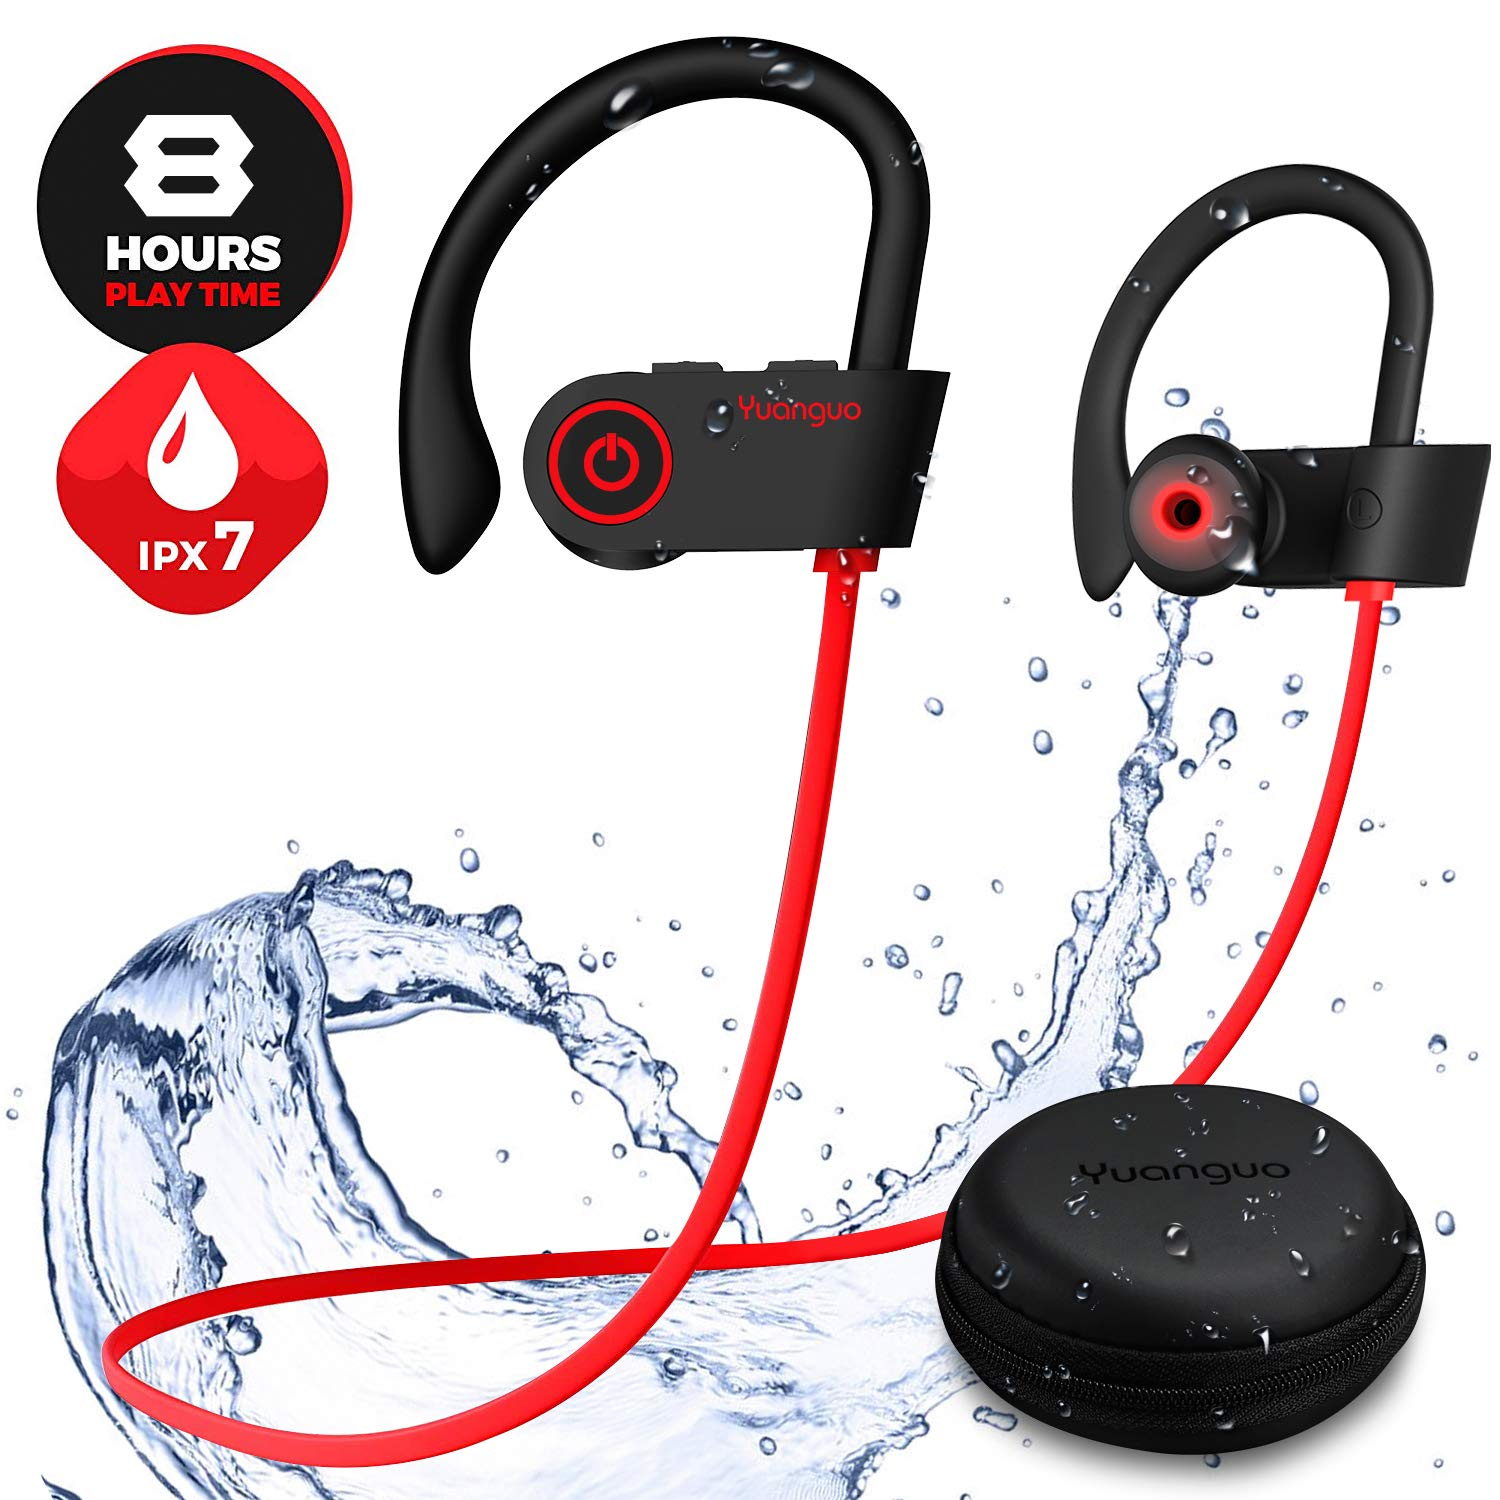 Designed for Sport Y2 Bluetooth Headphones, Wireless Headphones Earbuds with Mic, HD Stereo Upgraded Fitter Waterproof Sport Workout Running Wireless Bluetooth Earbuds Earphones for Android iPhone